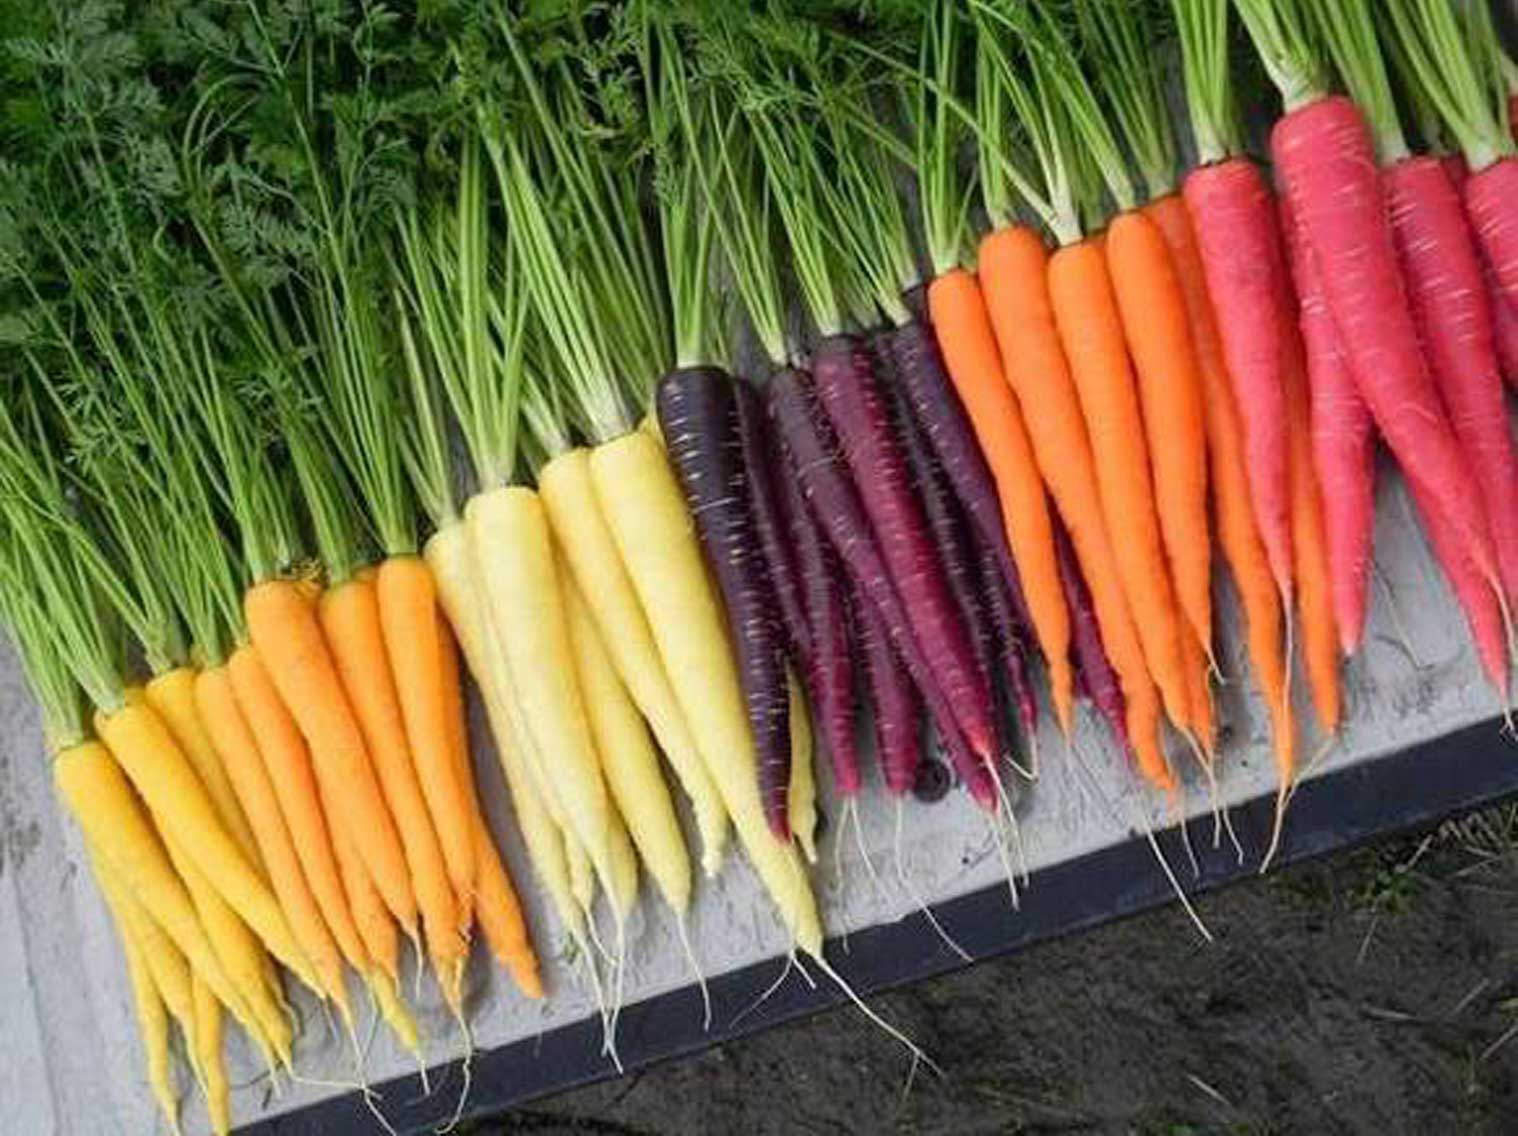 A colorful array of heirloom carrots